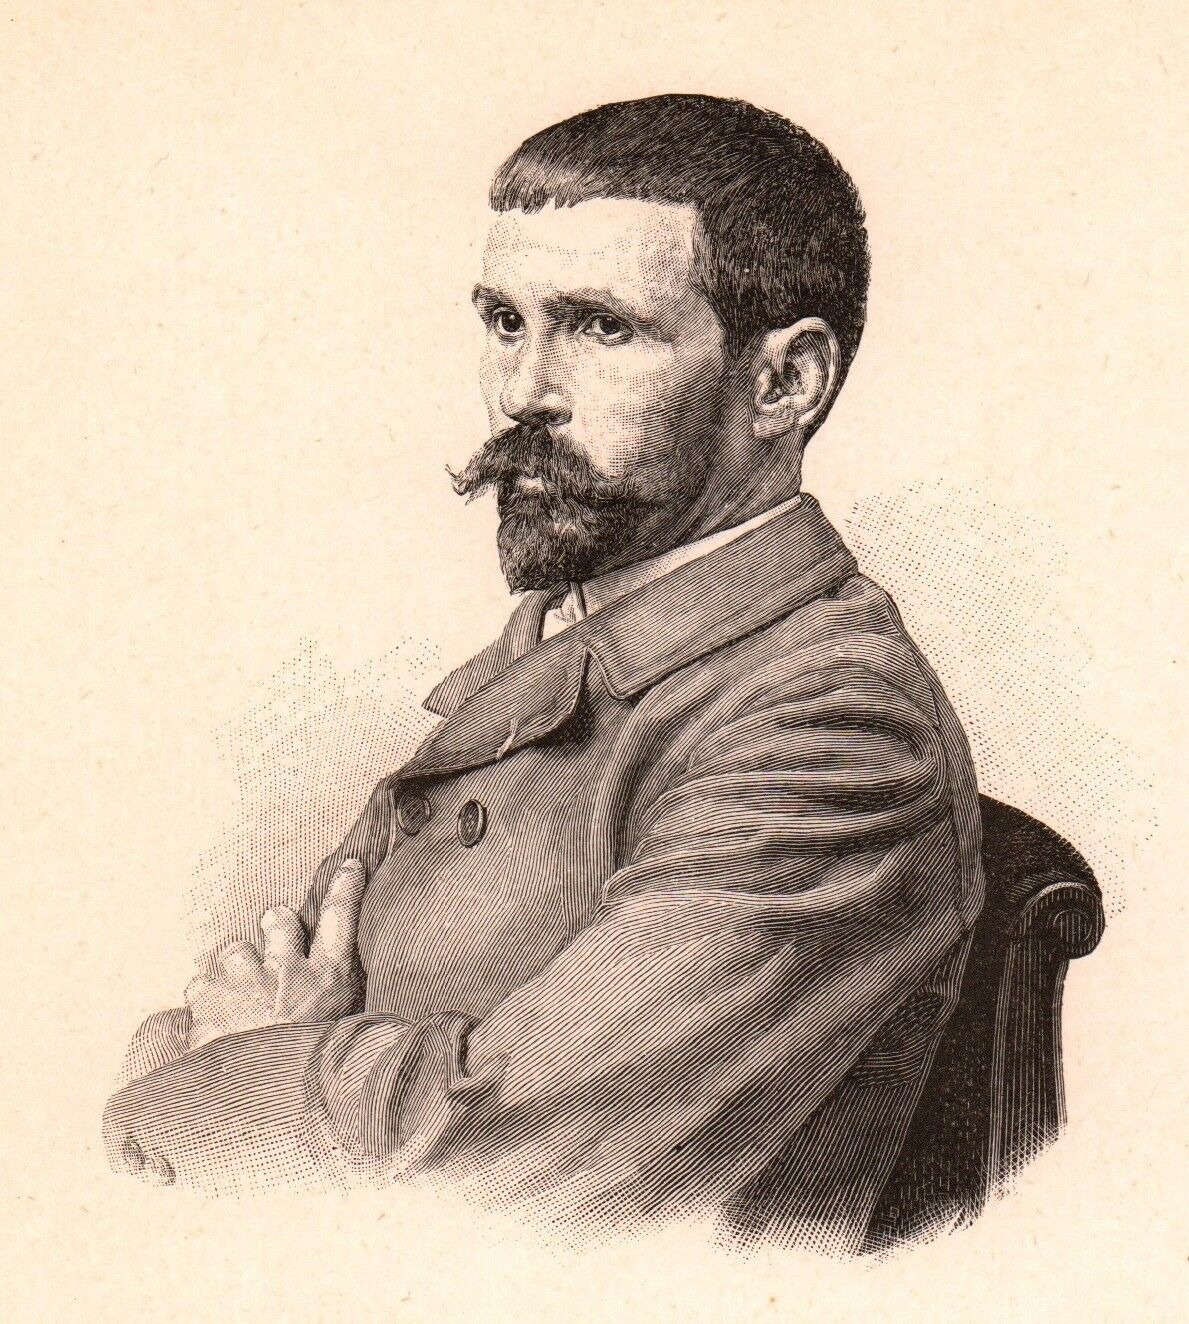 image of Pascal Adolphe Jean Dagnan-Bouveret from wikipedia